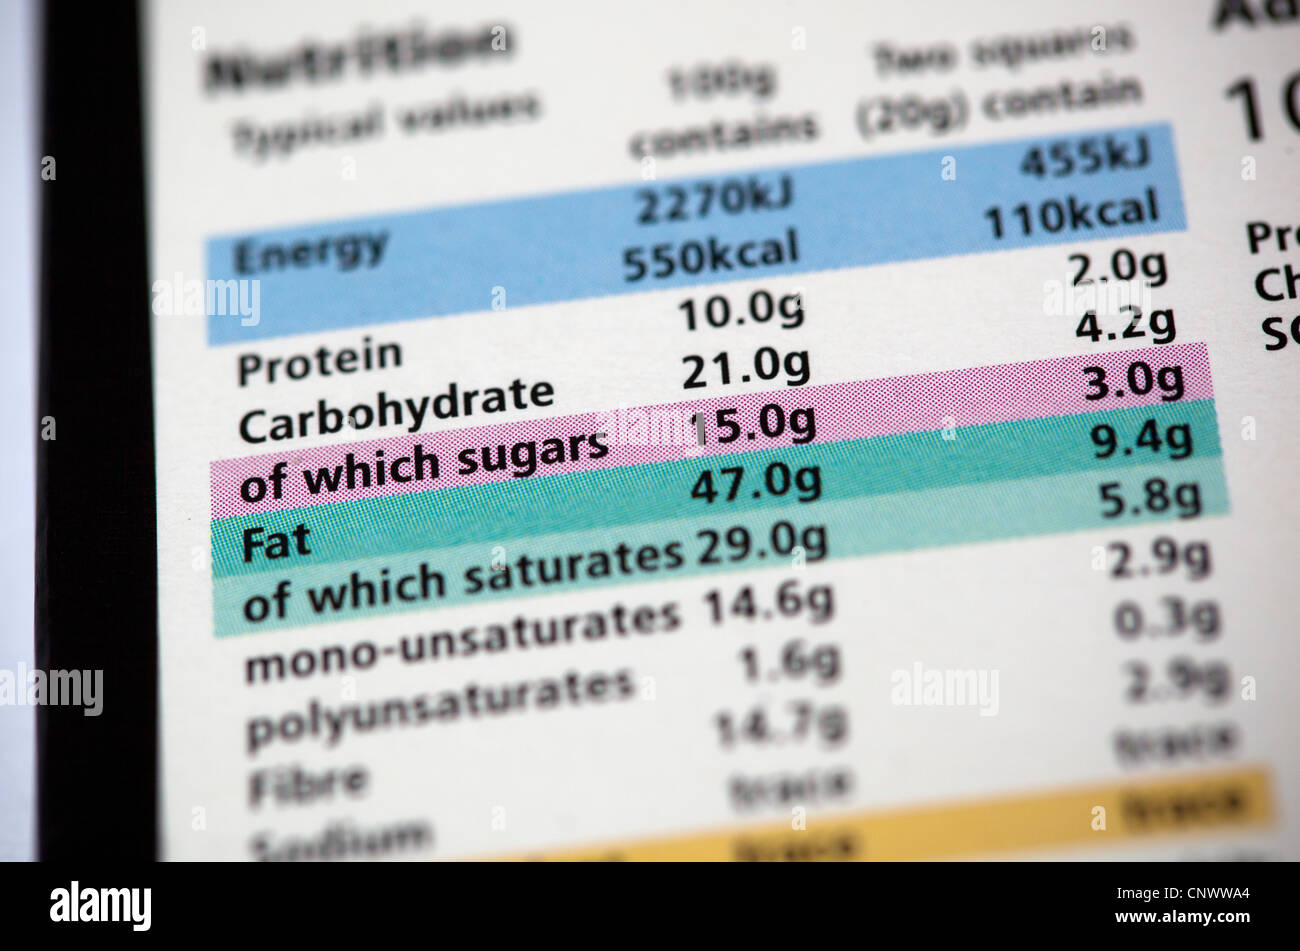 Nutrition Food Label - Stock Image